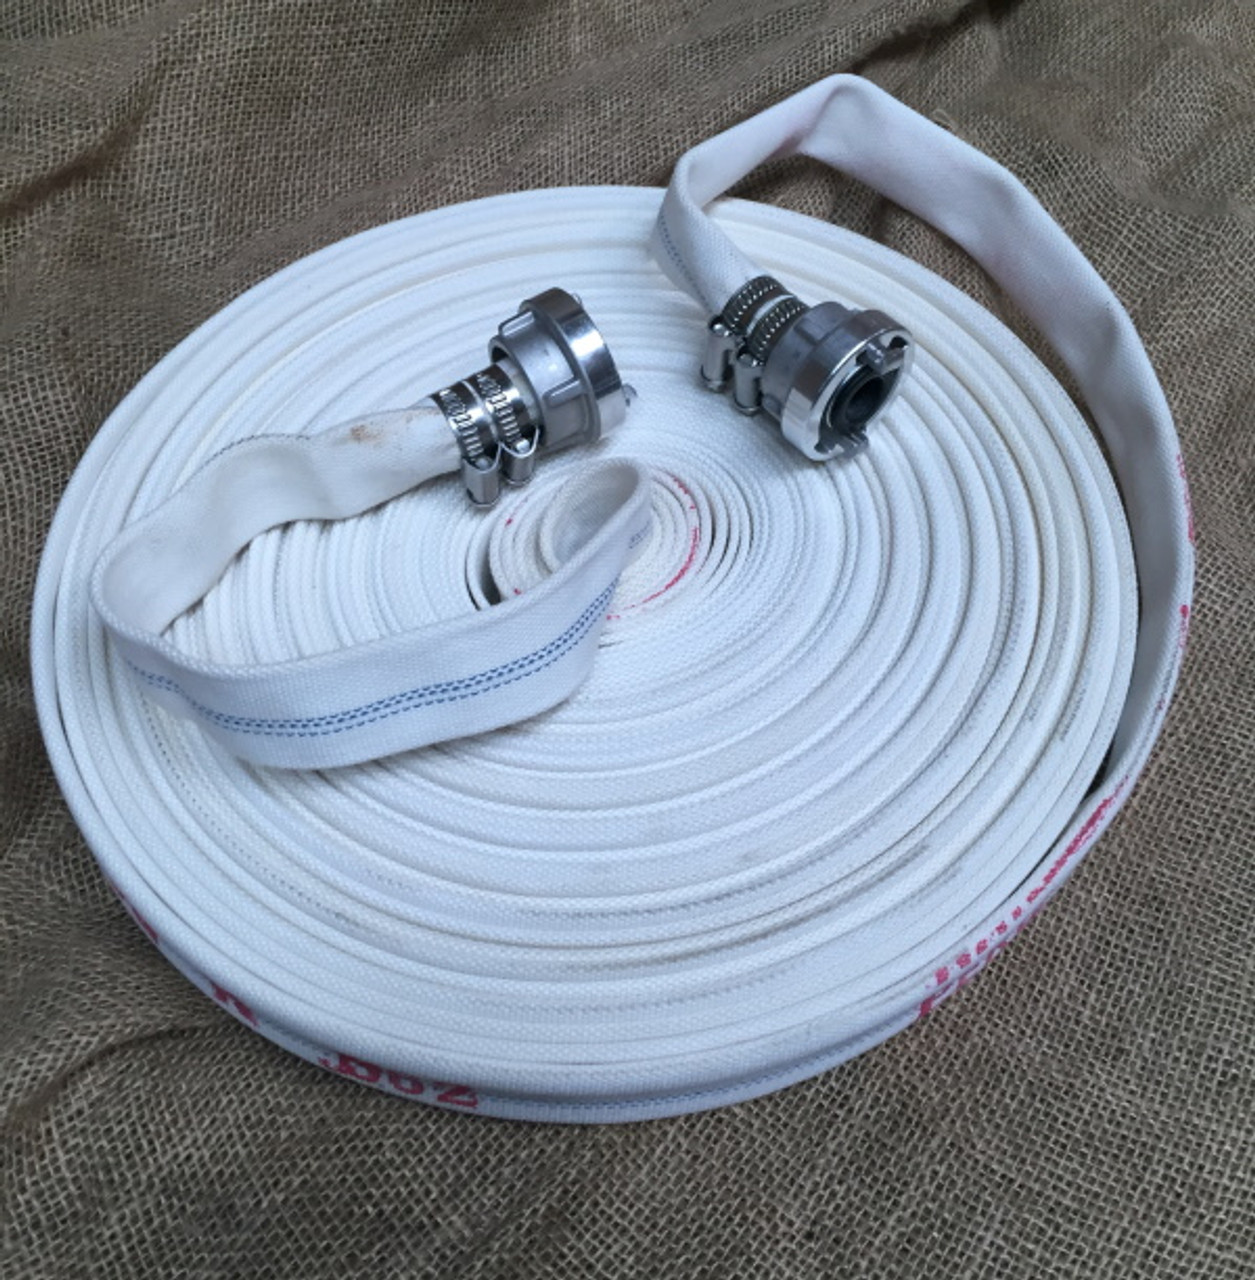 25mm x 30m Ranger percolating fire hose with Storz fittings.